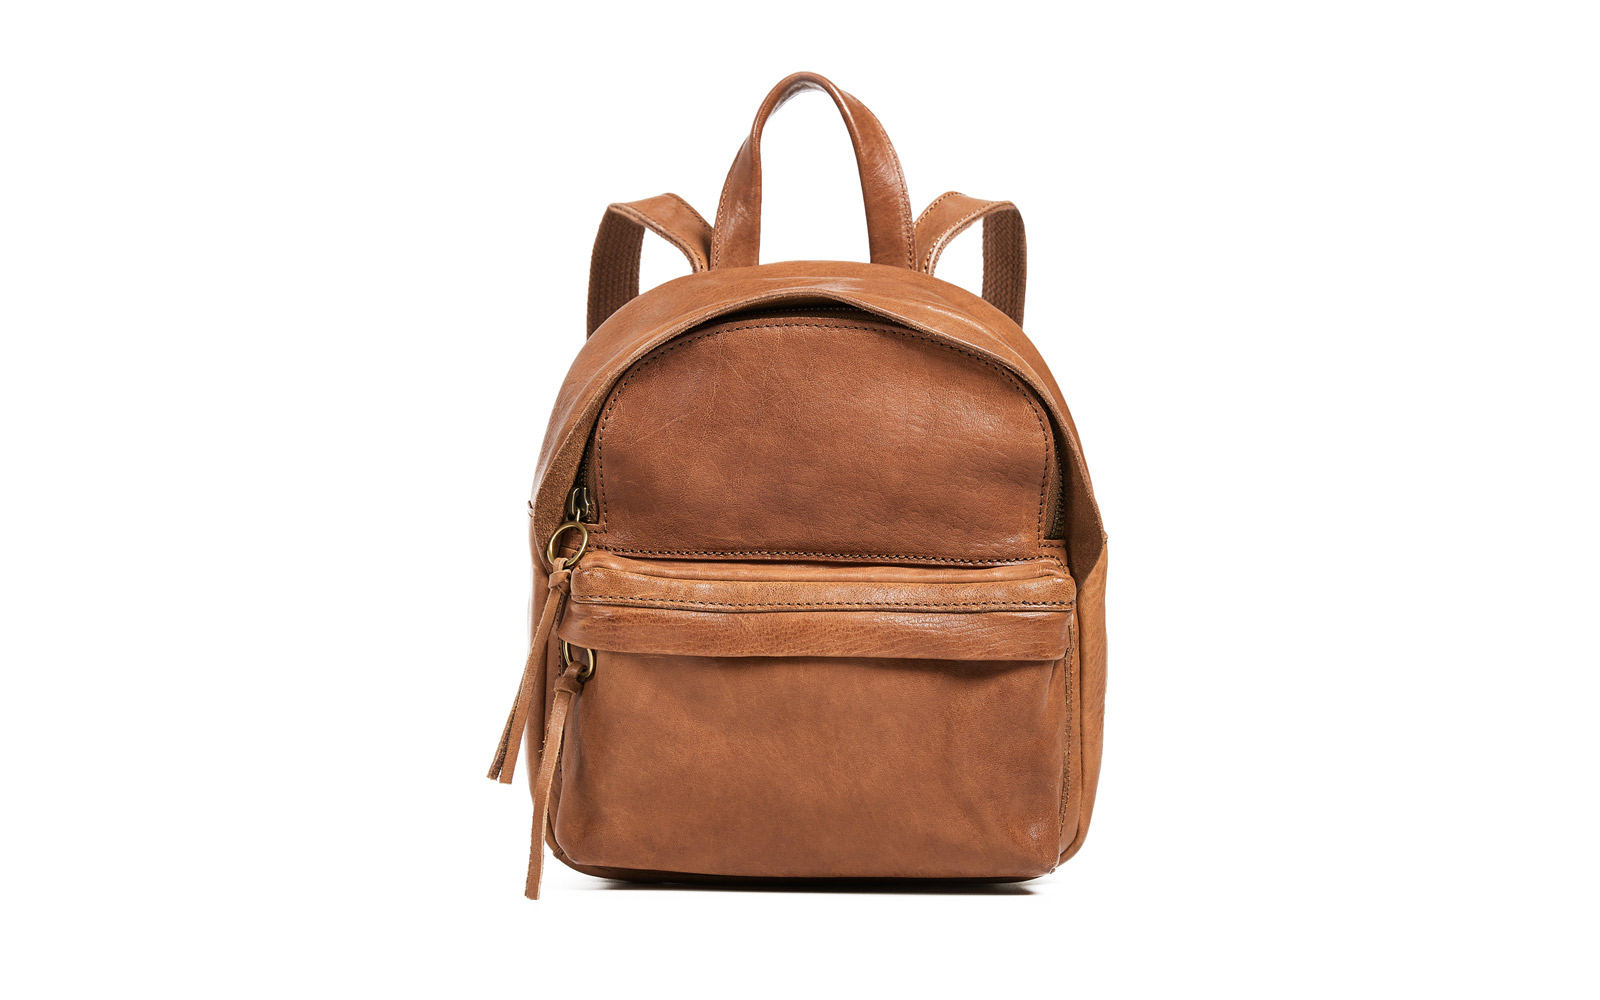 f4fae09f590 11 Small Backpacks With Just Enough Room for the Essentials | Travel ...